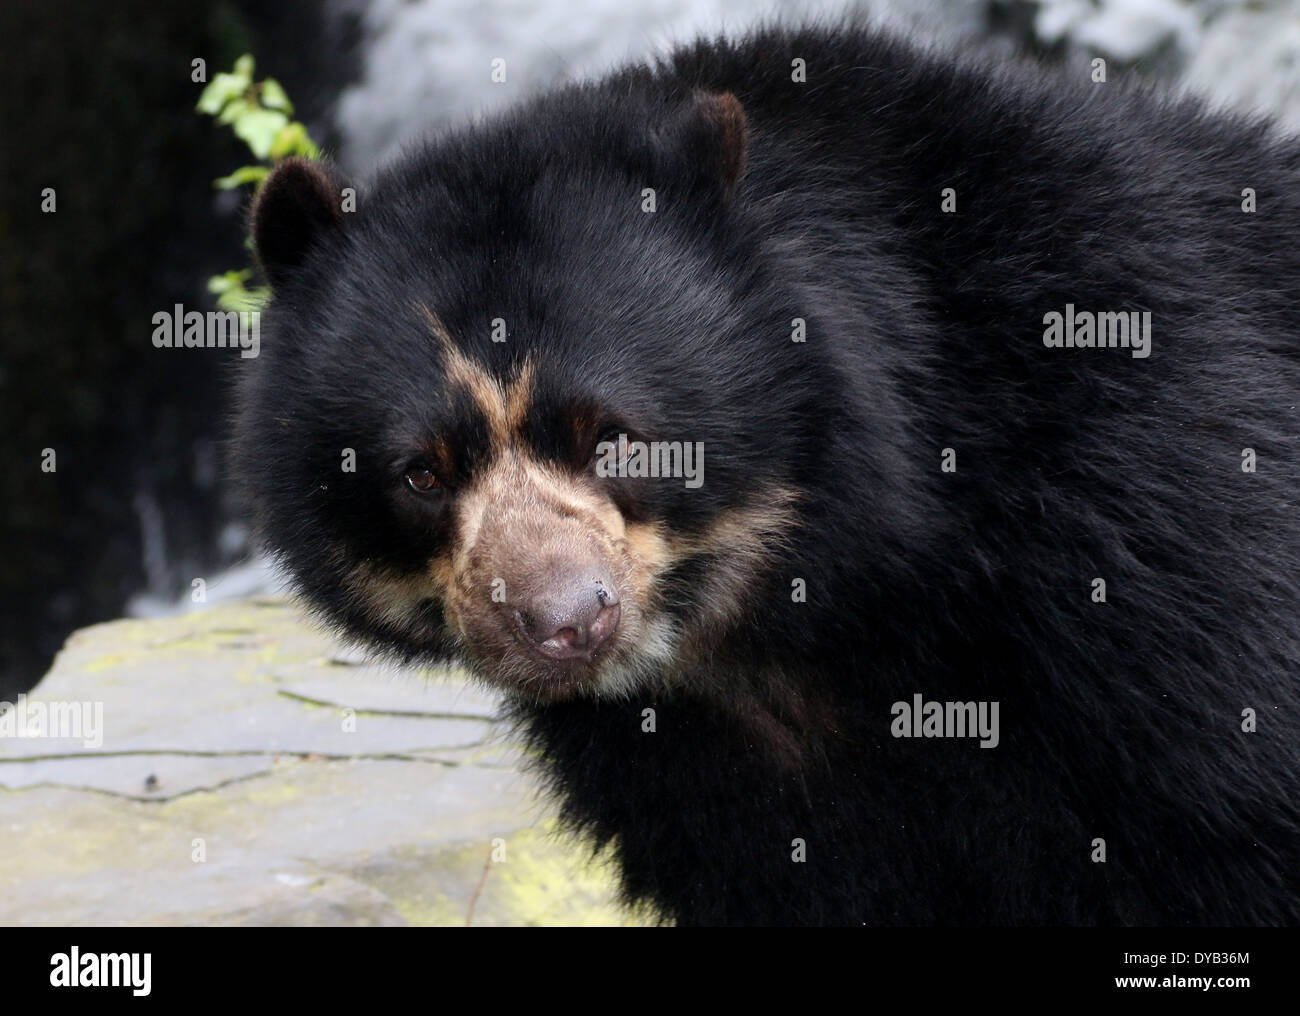 South American Spectacled or  Andean bear (Tremarctos ornatus) close-up, facing camera Stock Photo